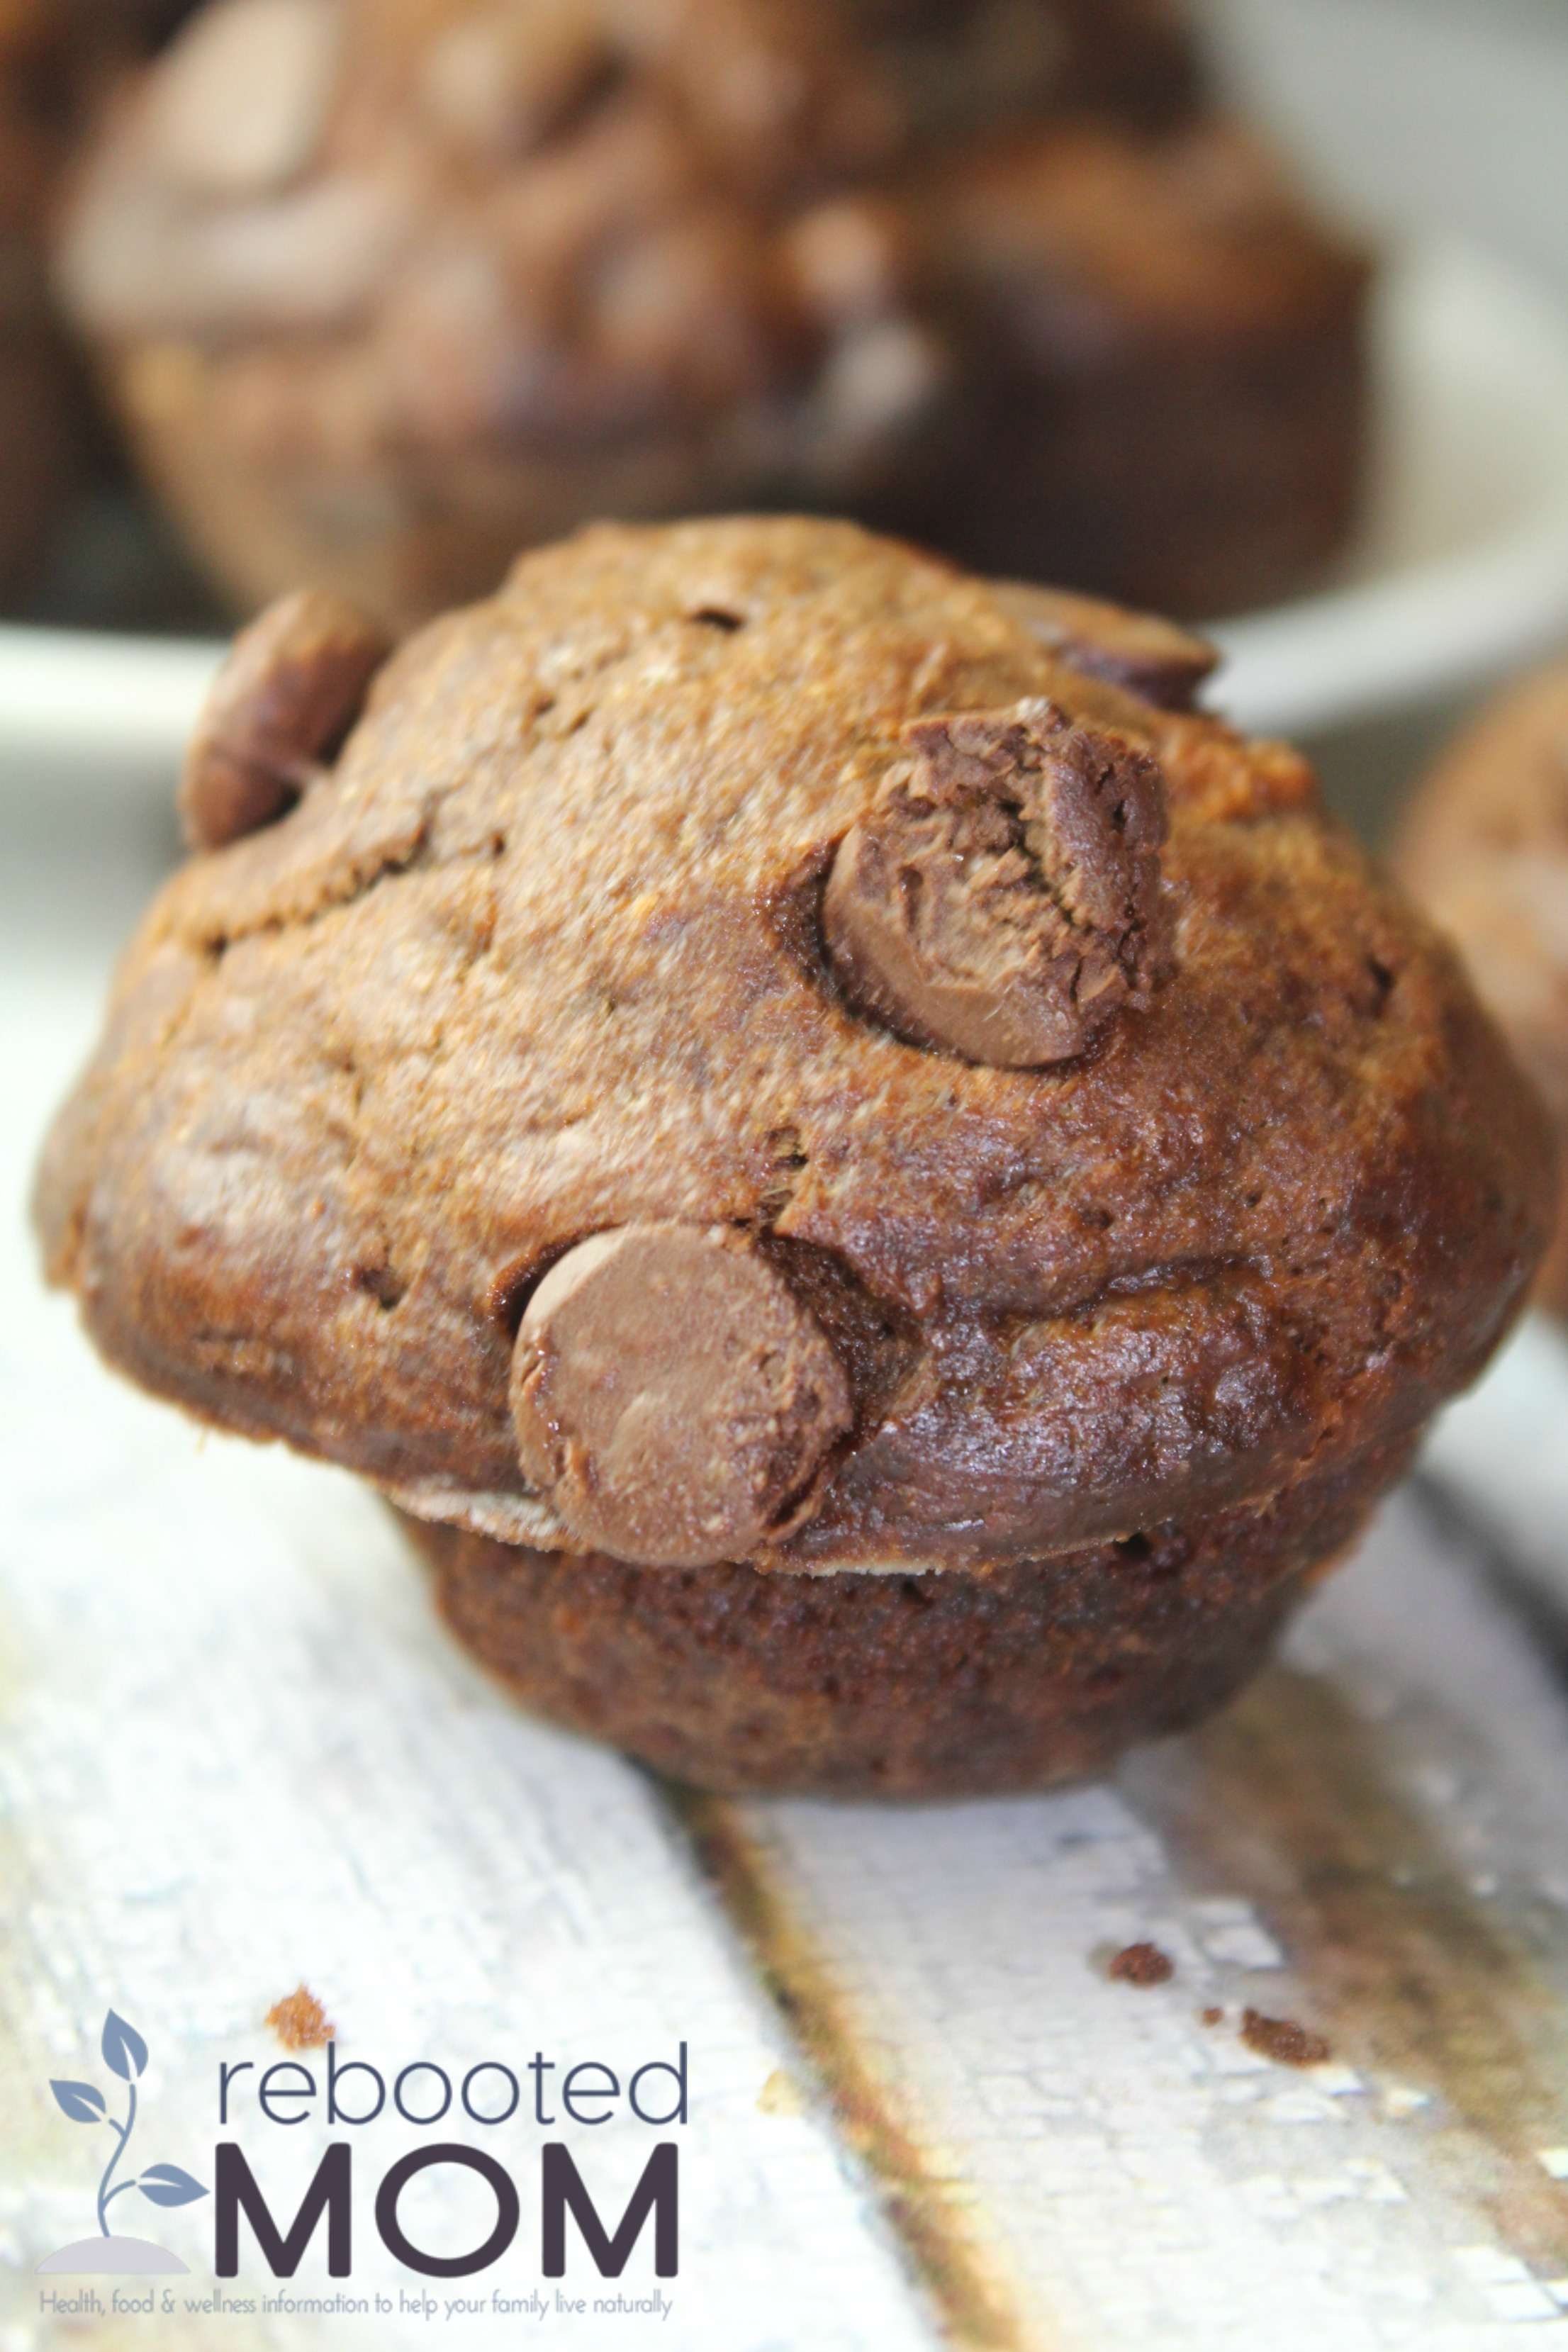 Simple ingredients transformed into beautifully rich, healthy double chocolate zucchini muffins that are perfect for little hands!